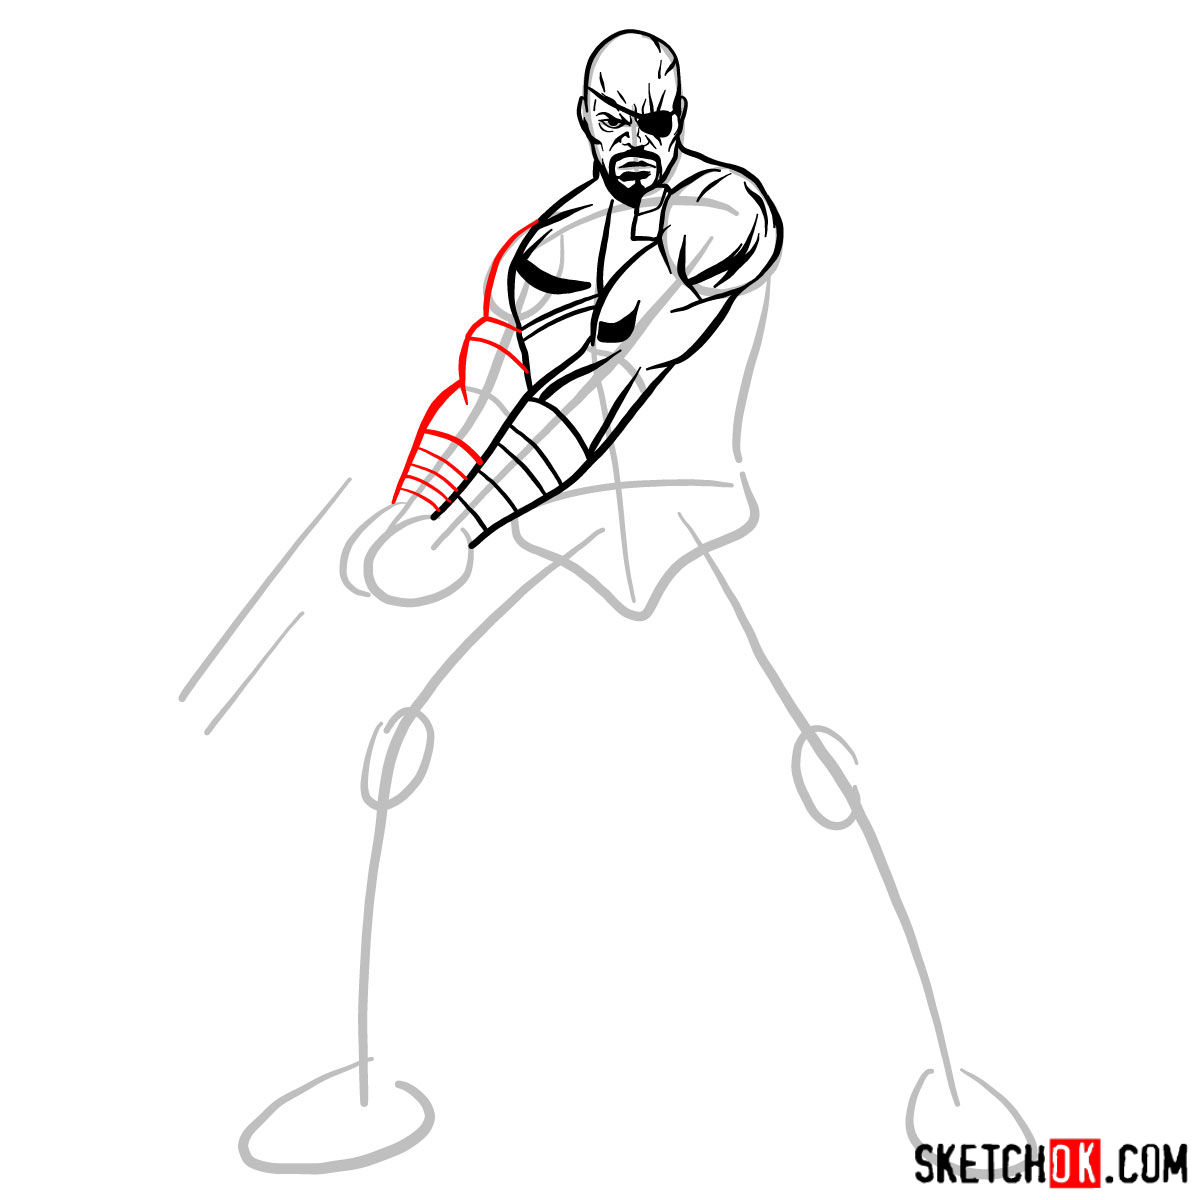 How to draw Nick Fury from the Avengers - step 08